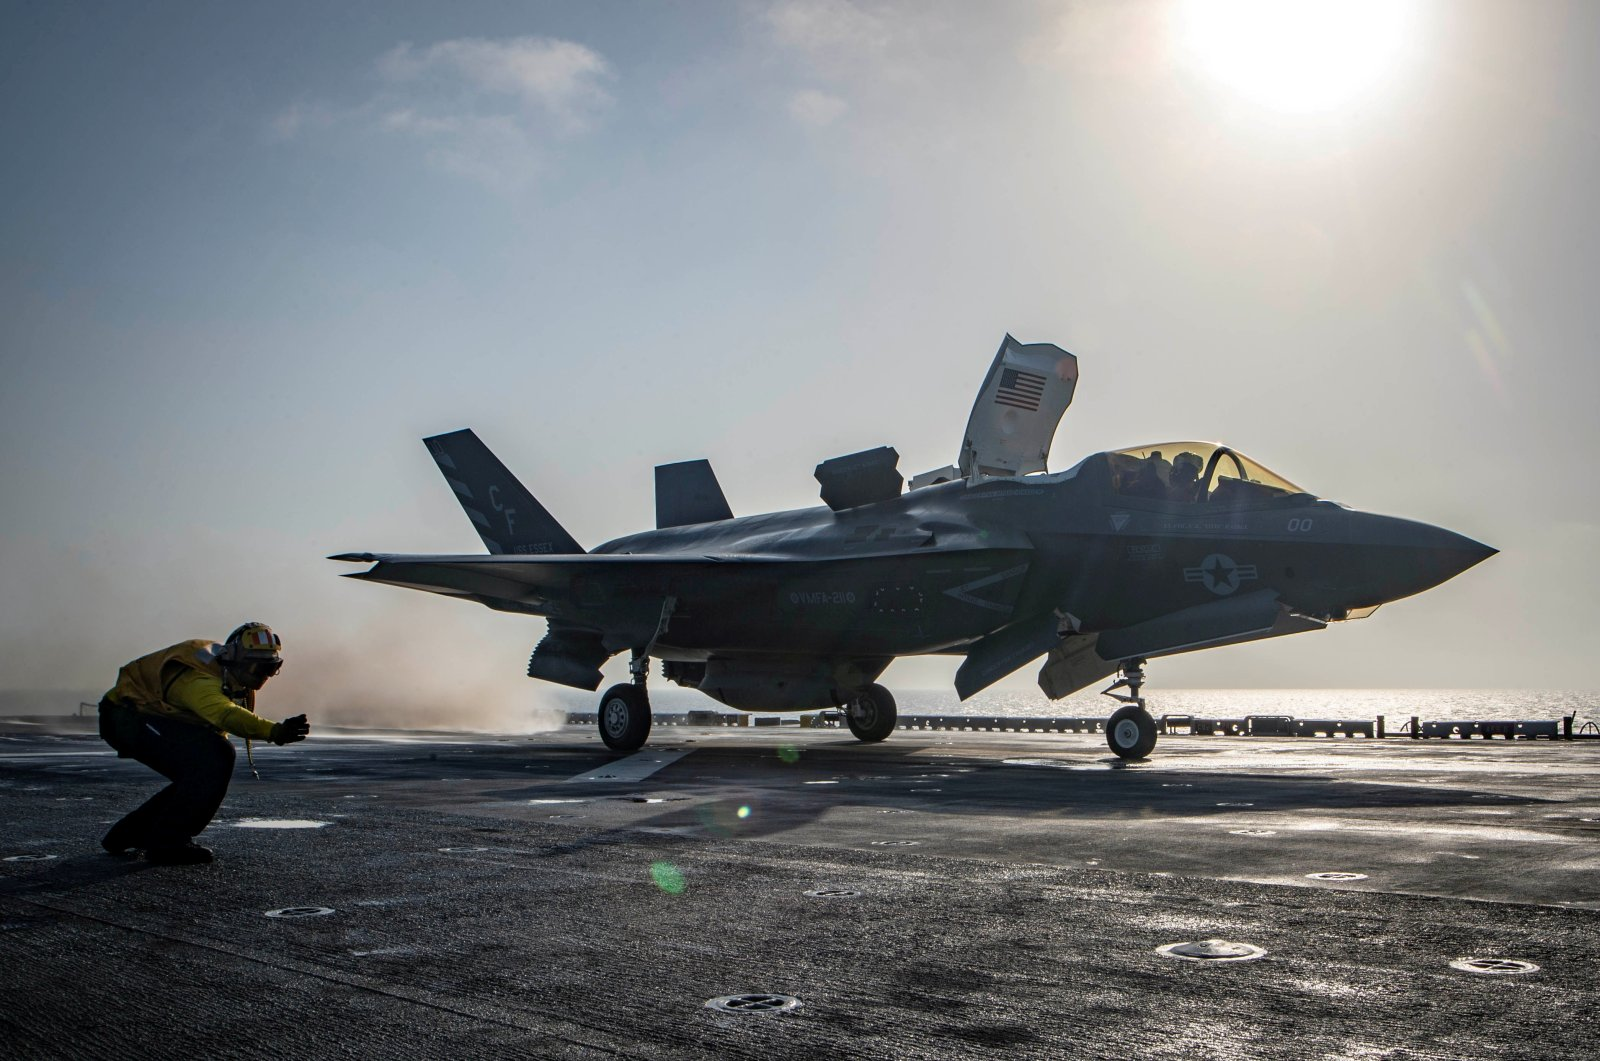 An F-35B Lightning II aircraft is launched aboard the amphibious assault ship USS Essex as part of the F-35B's first combat strike, against a Taliban target in Afghanistan, Sept. 27, 2018. (Reuters Photo)